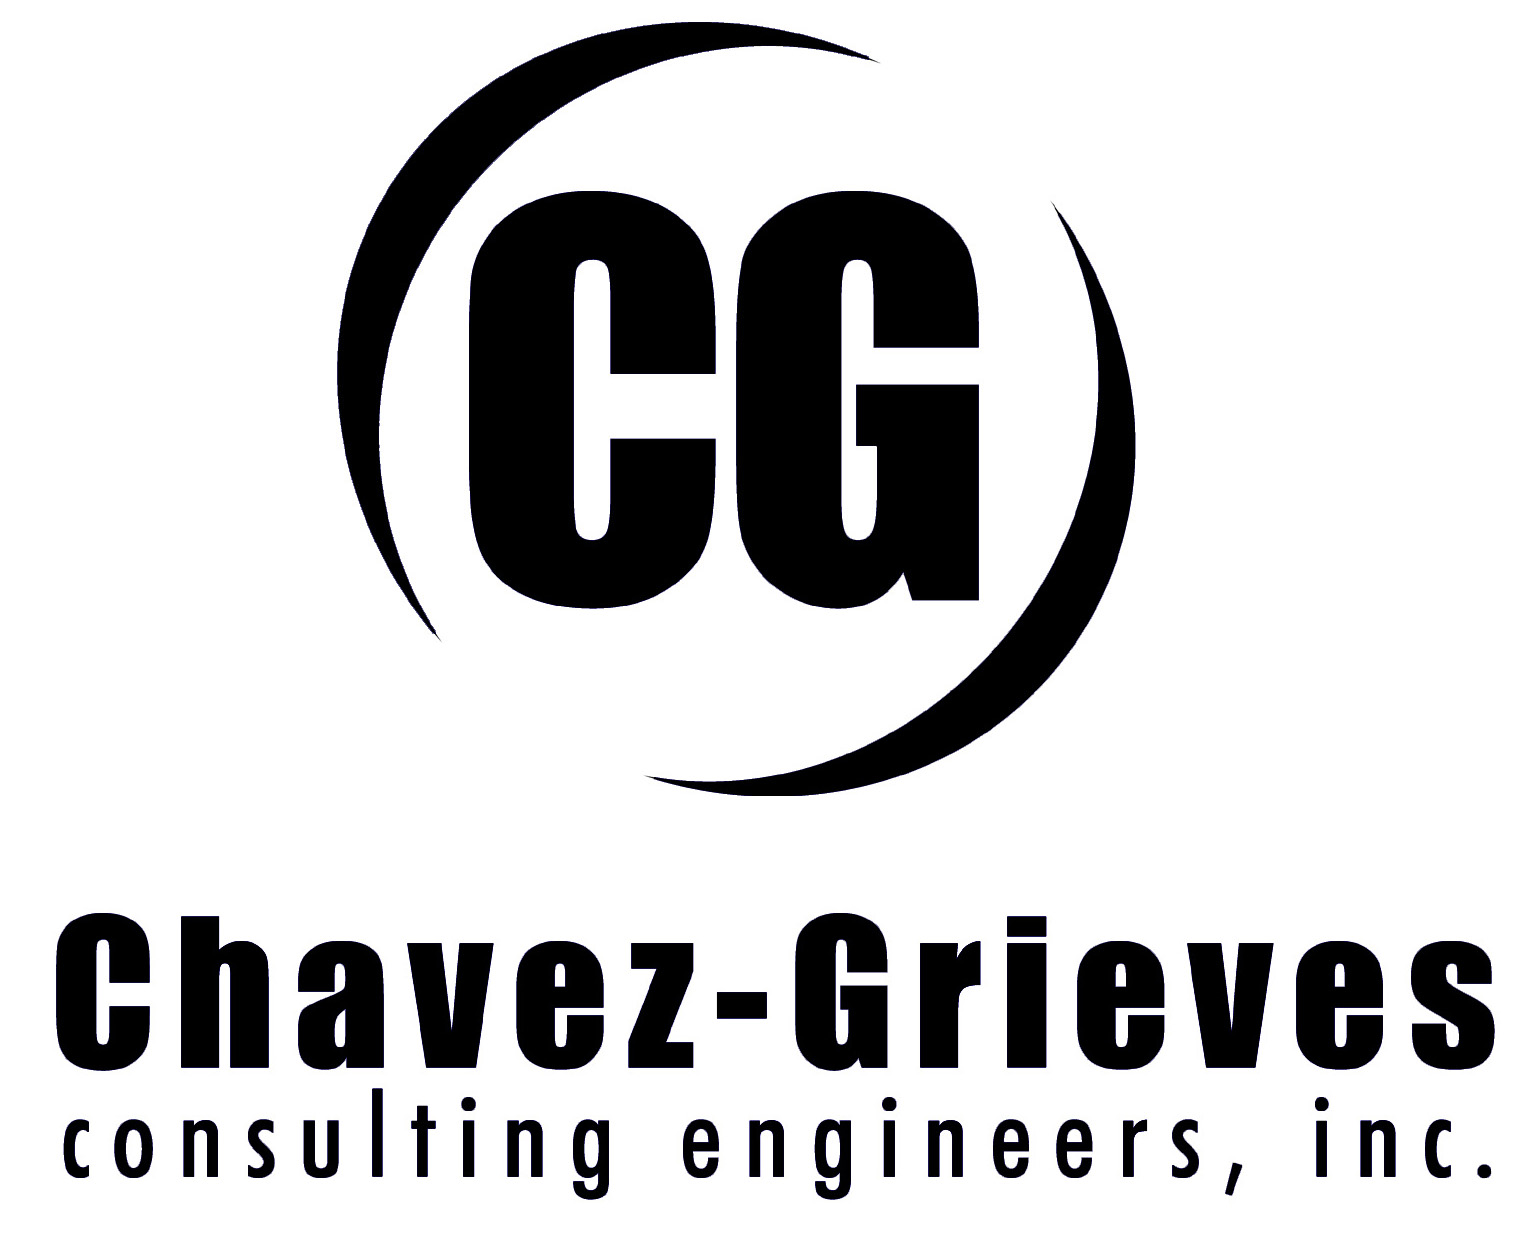 Chavez-Grieves Consulting Engineers, Inc. logo